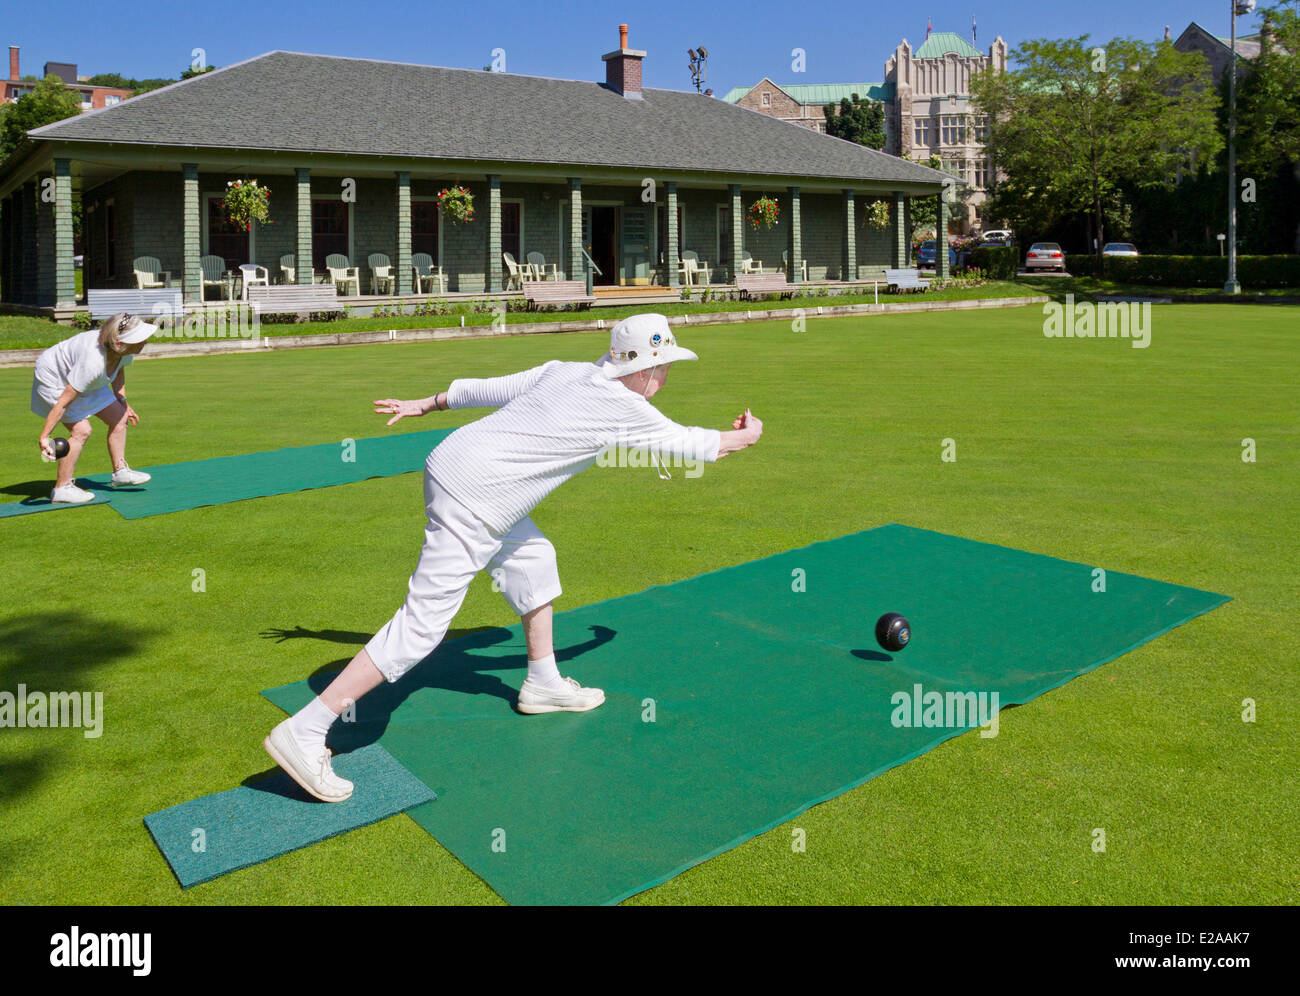 Canada, Quebec Province, Montreal, Westmount, the lawn bowling field Stock Photo